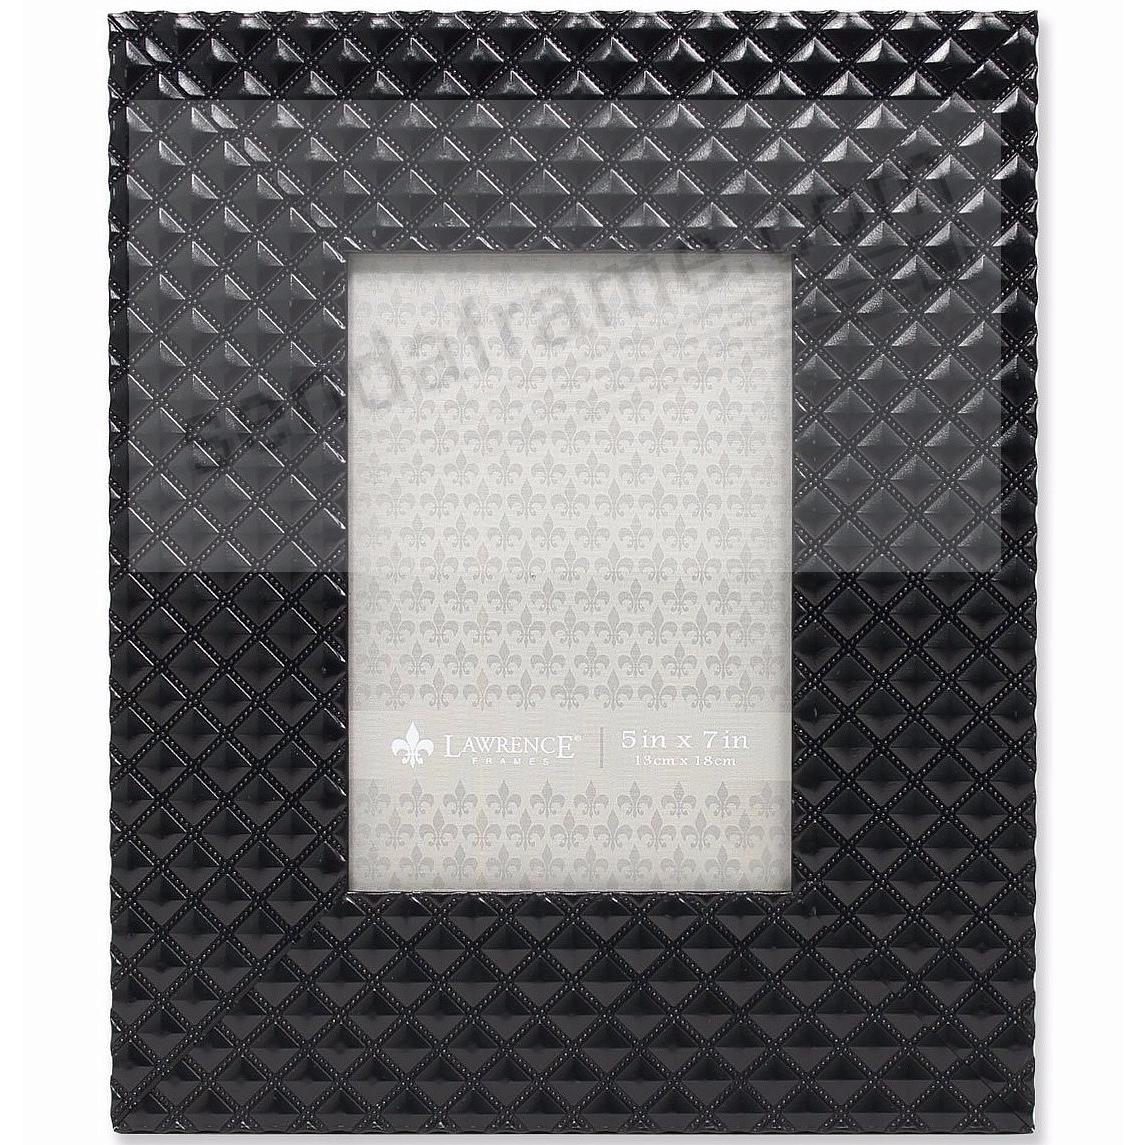 DIAMOND PATTERN 5x7 Frame by Lawrence®